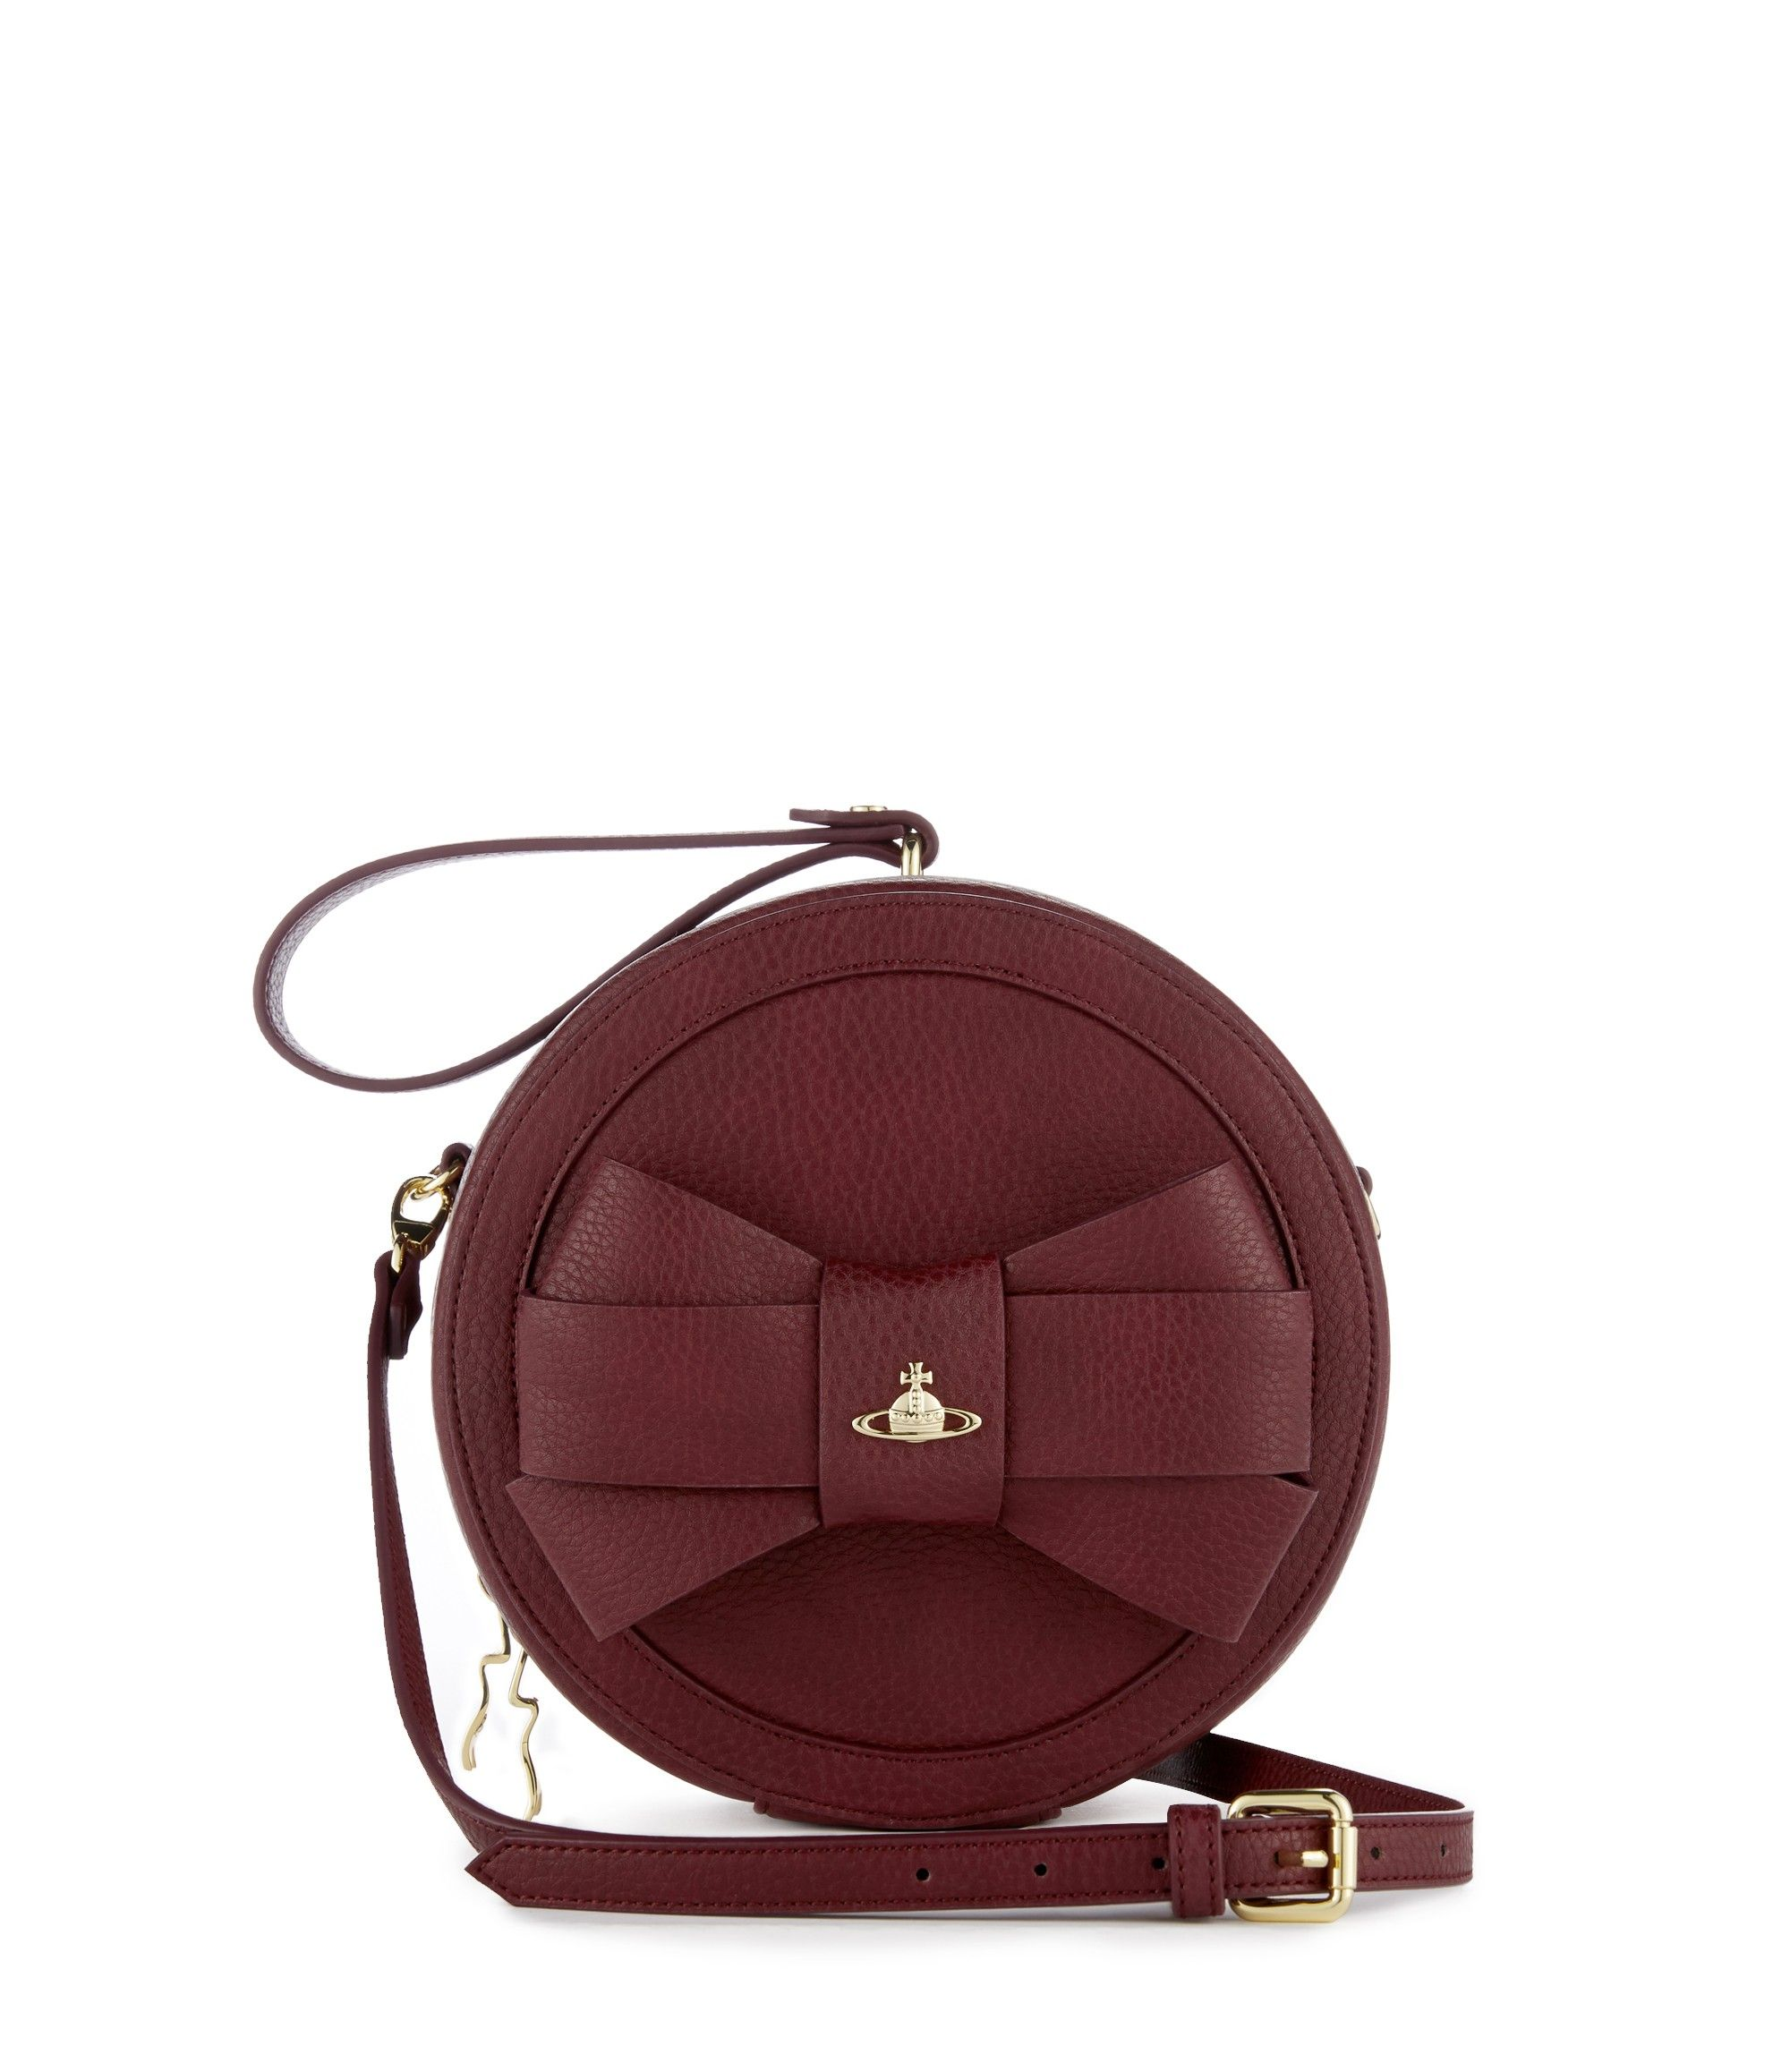 Bow Bag 6993 Bordeaux